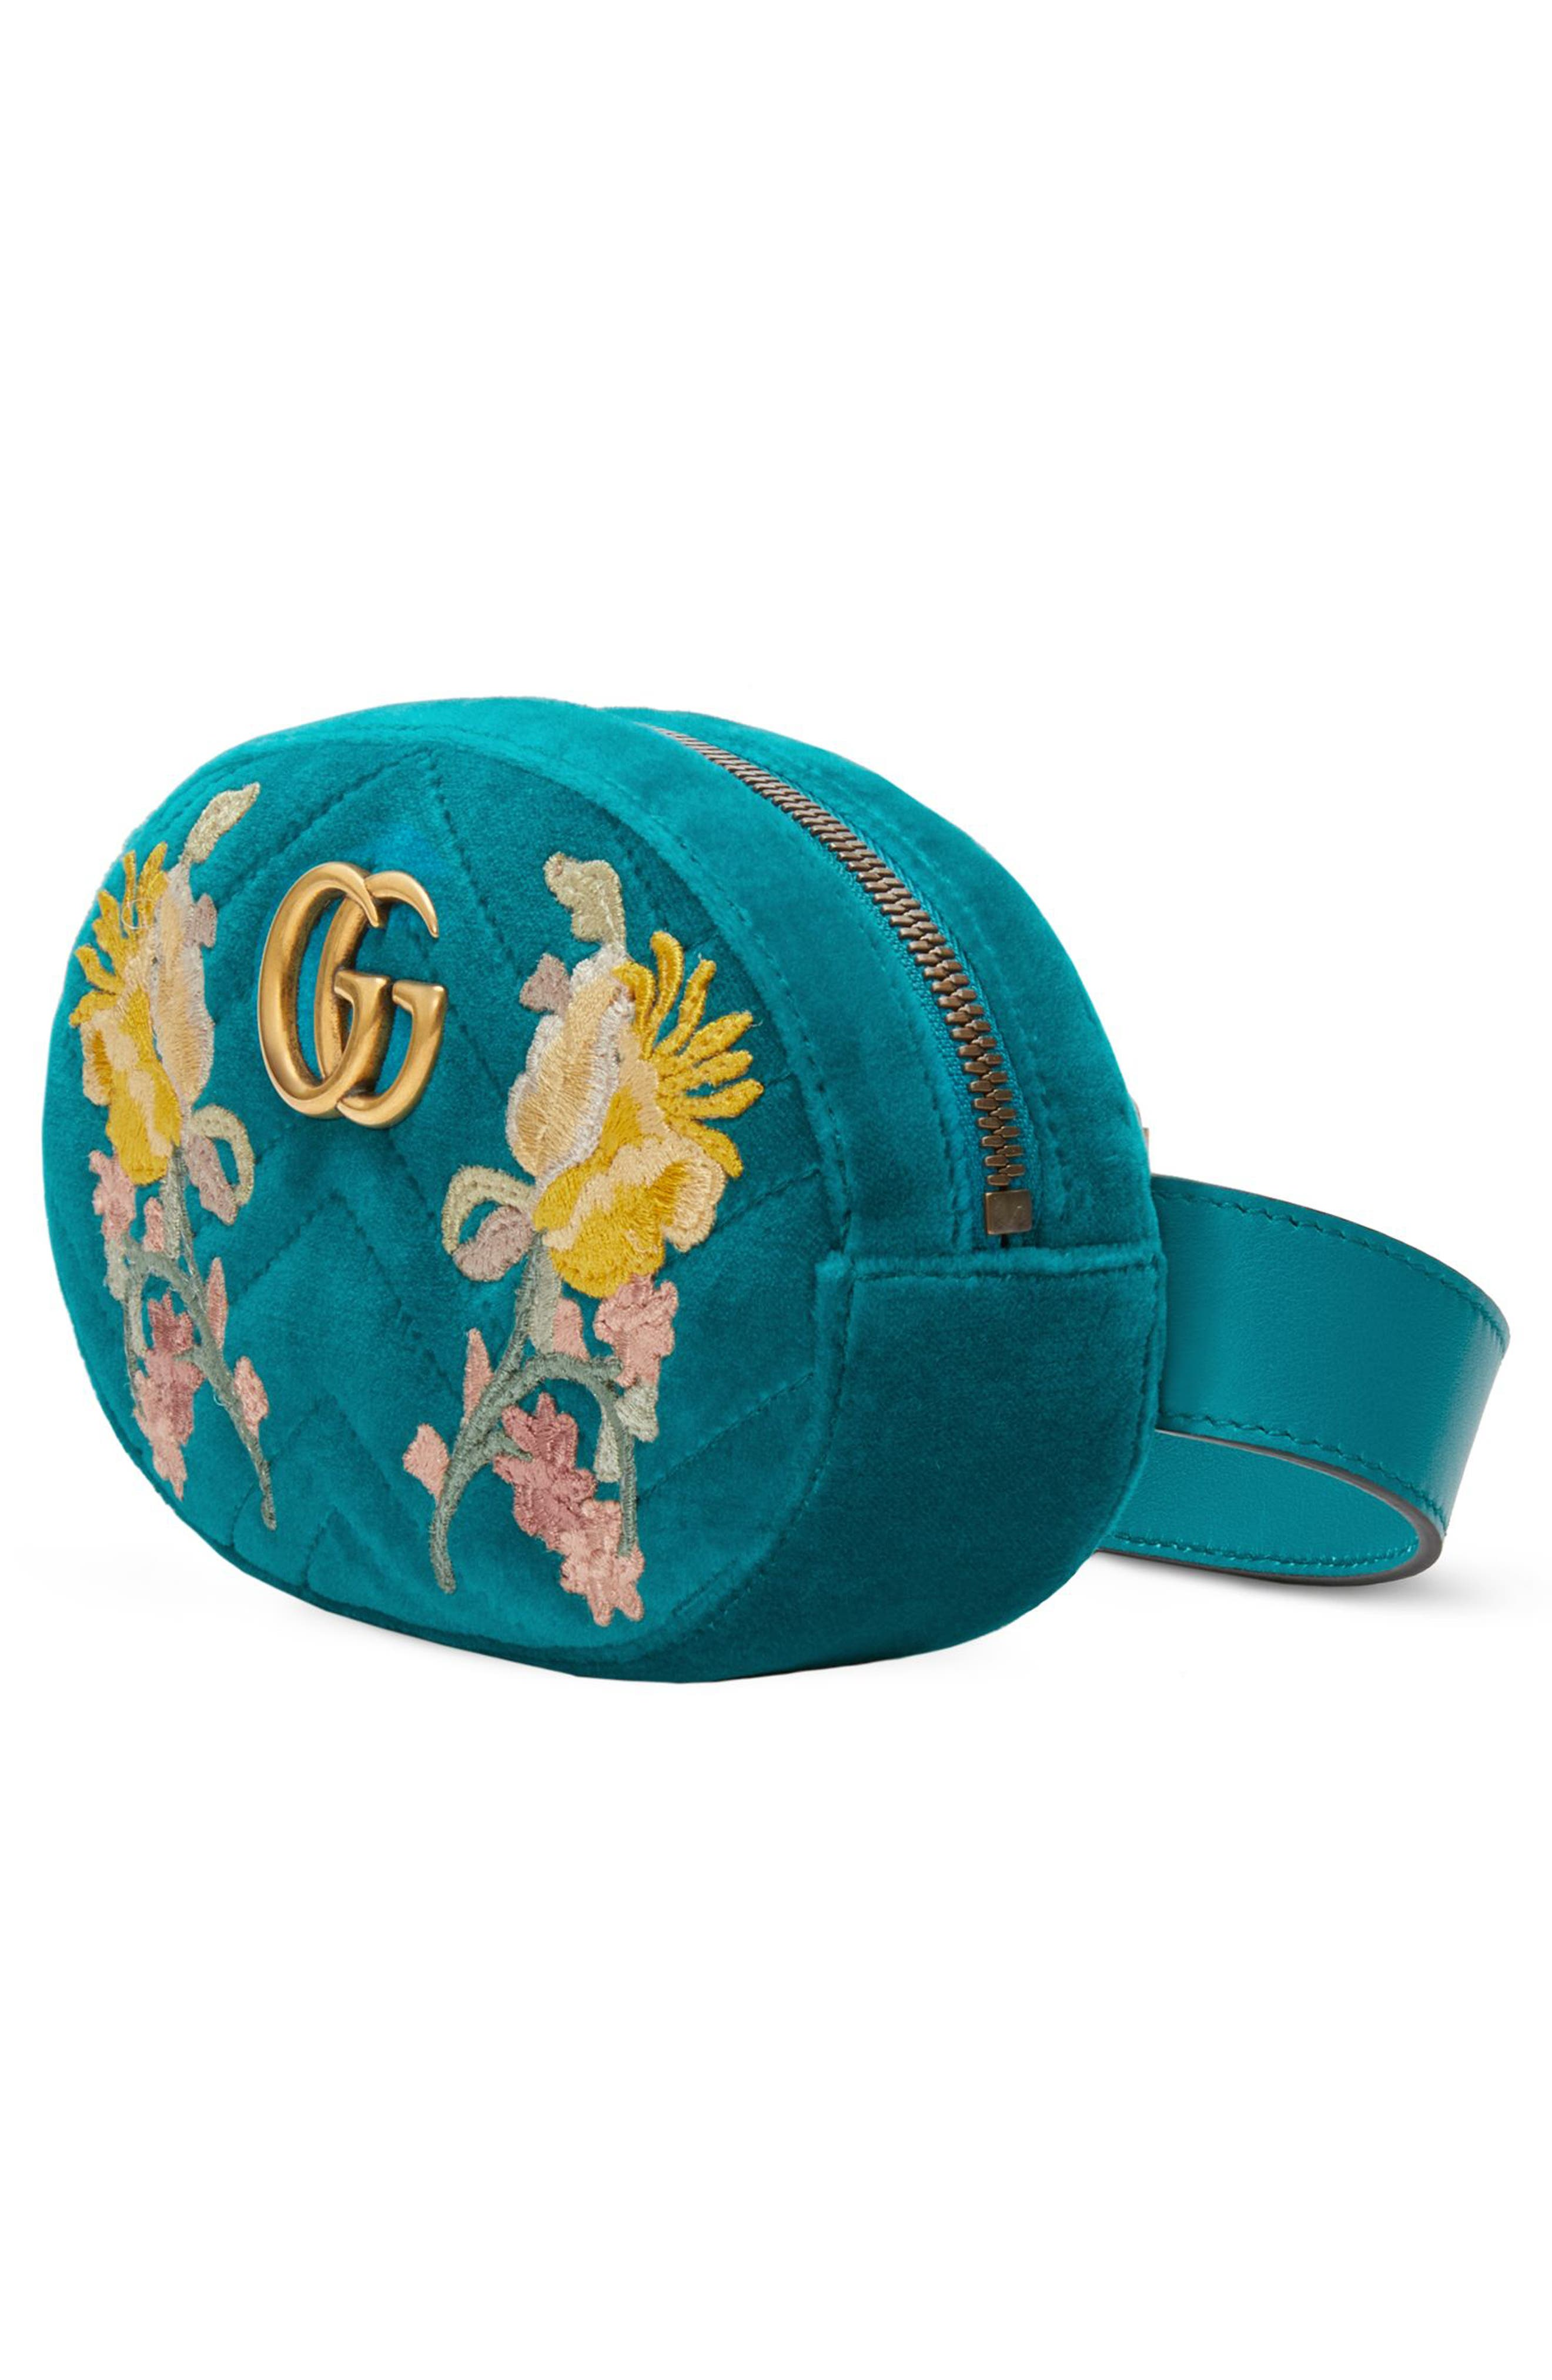 GG Marmont 2.0 Embroidered Velvet Belt Bag,                             Alternate thumbnail 4, color,                             440